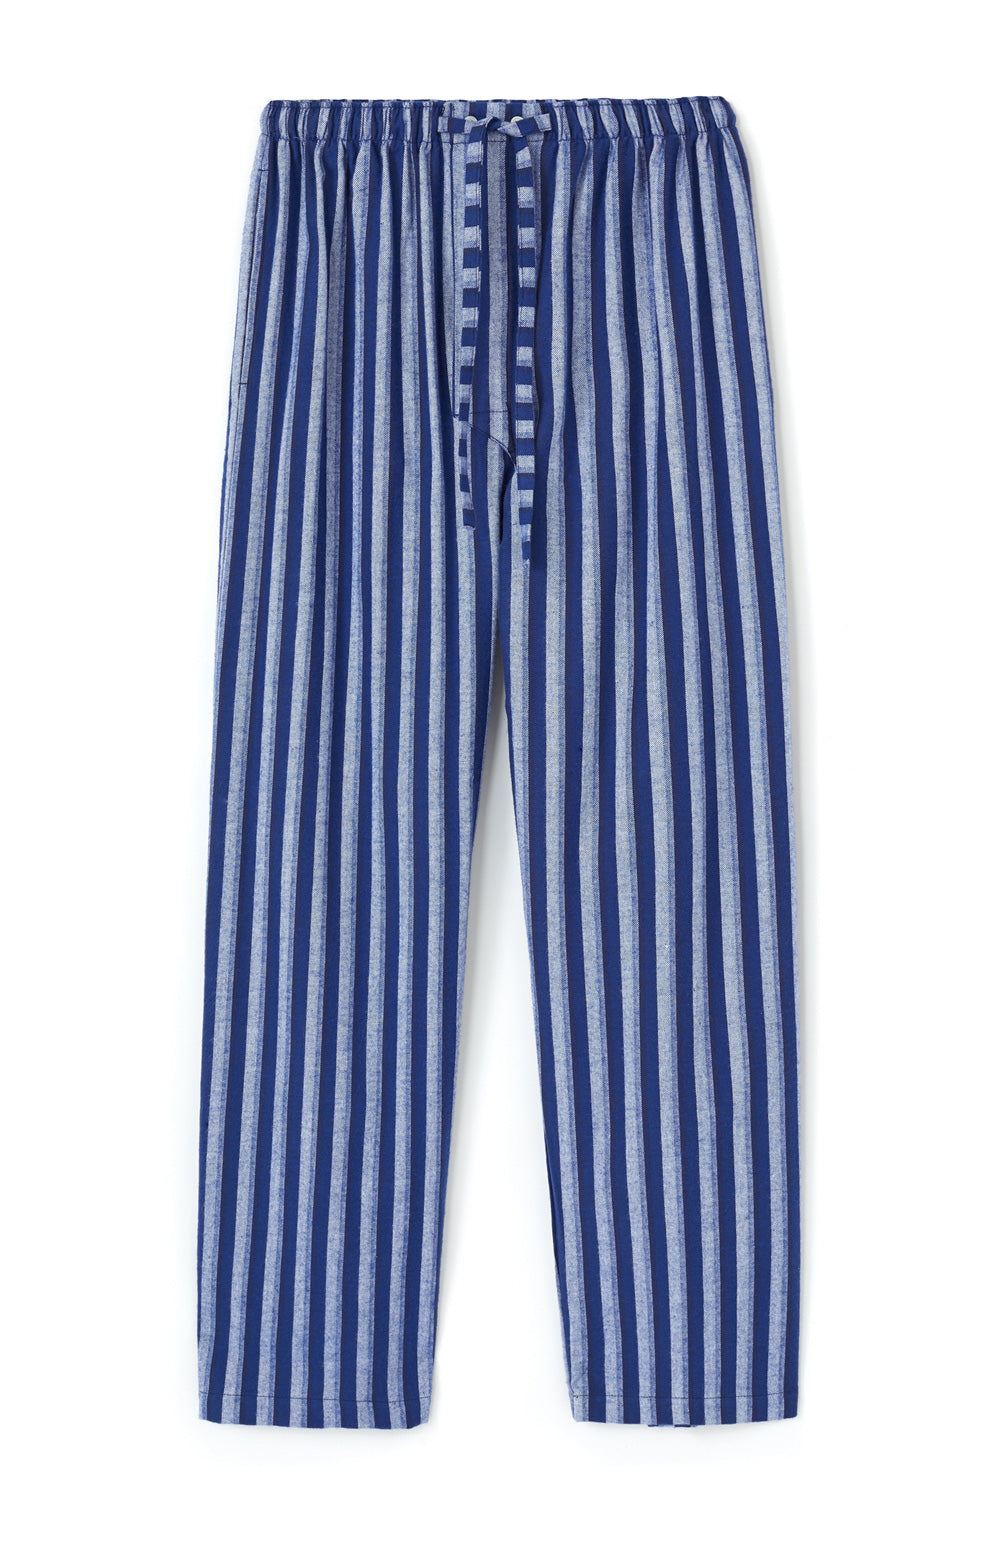 Brushed Cotton Dark Blue Stripe Pyjama Trousers | Bonsoir of London